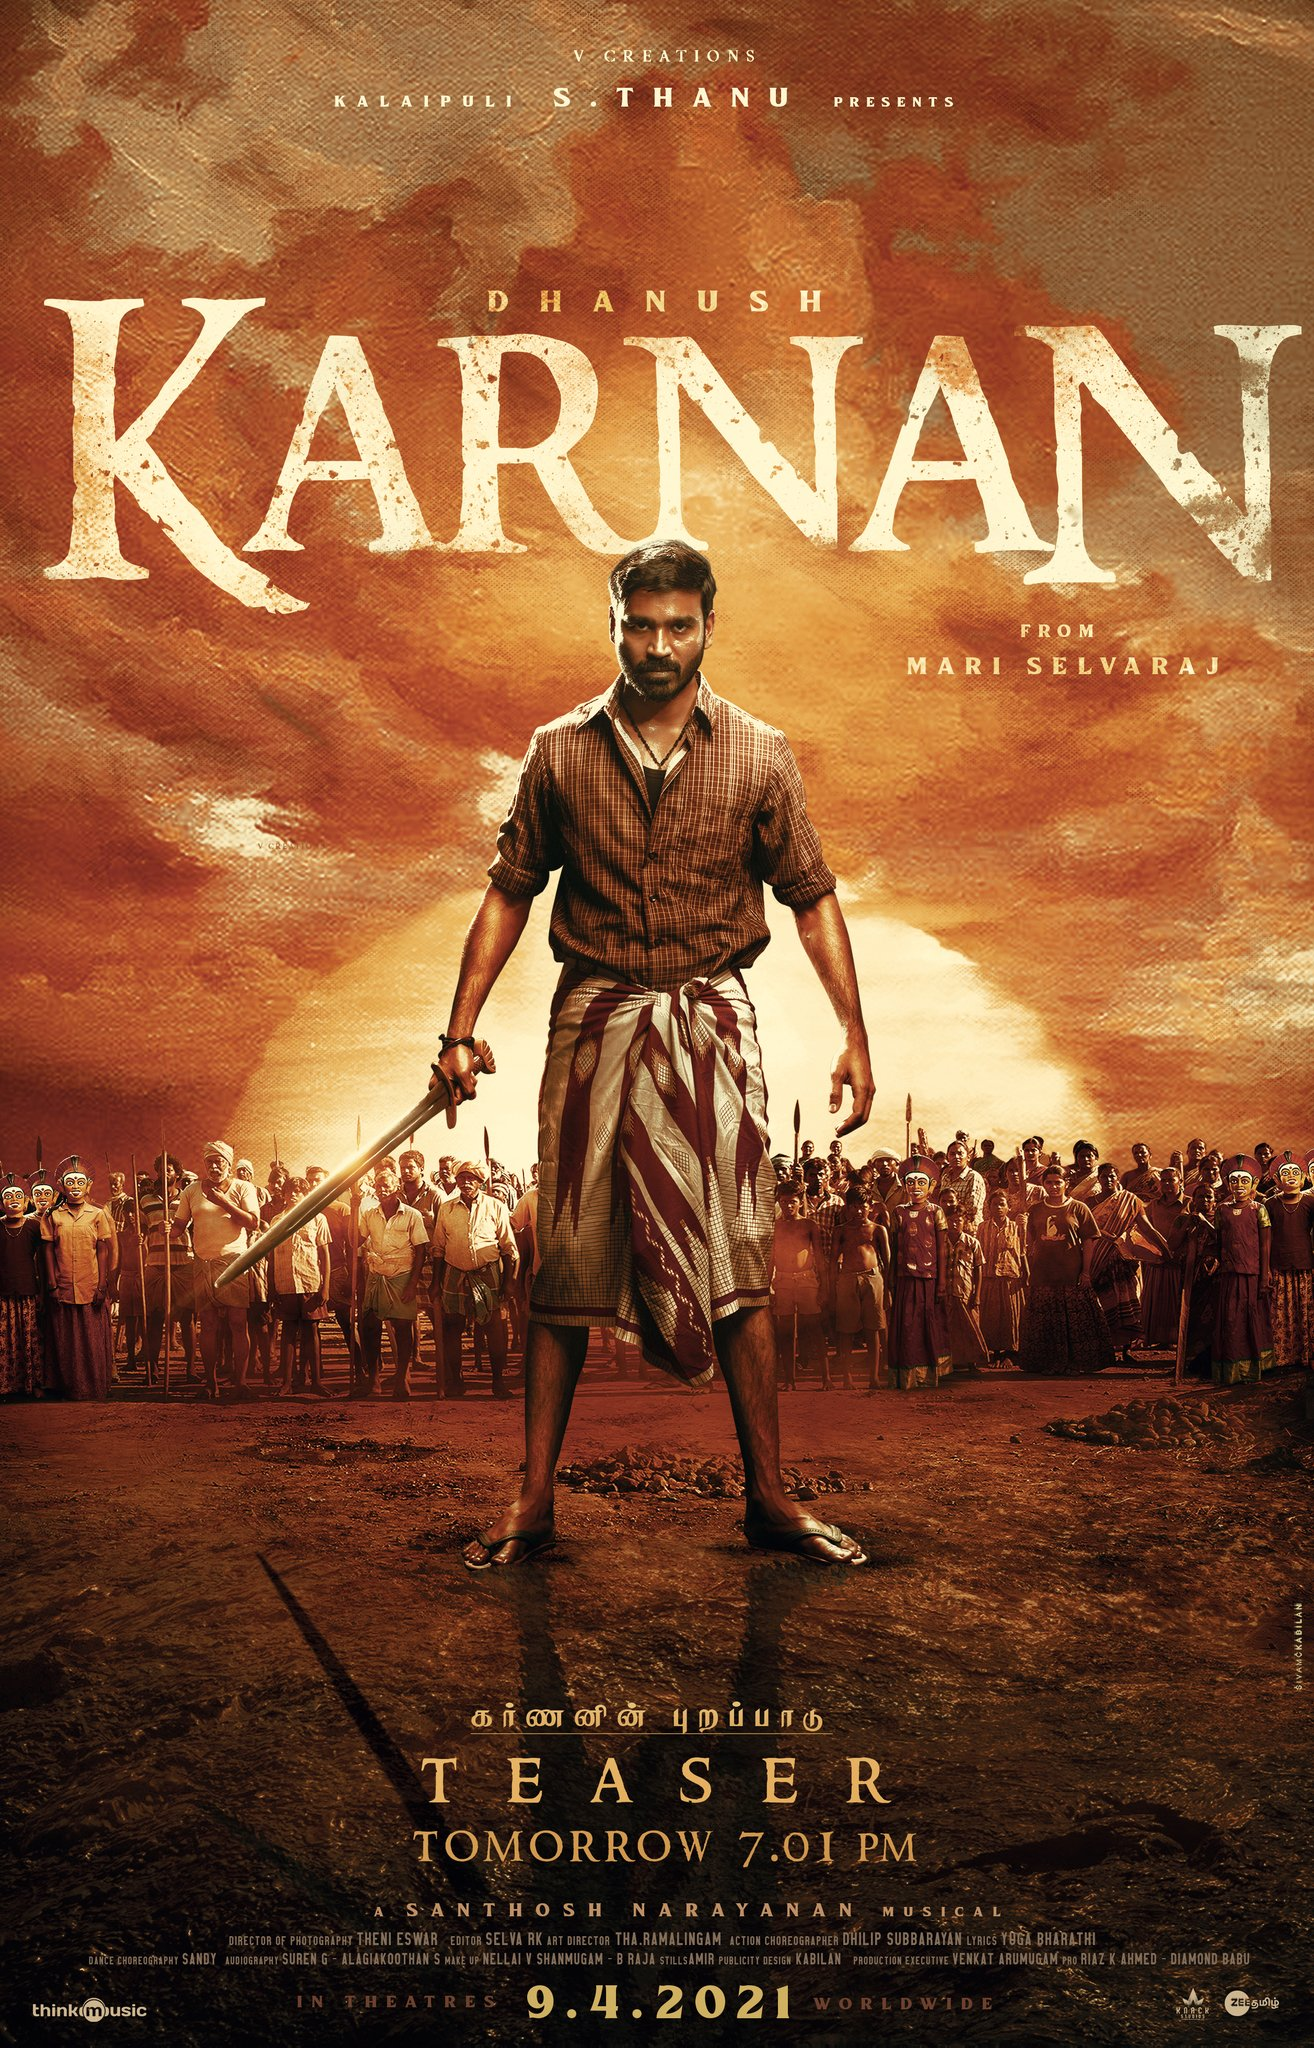 Karnan 2021 Tamil 720p AMZN HDRip ESubs 1.23GB Download